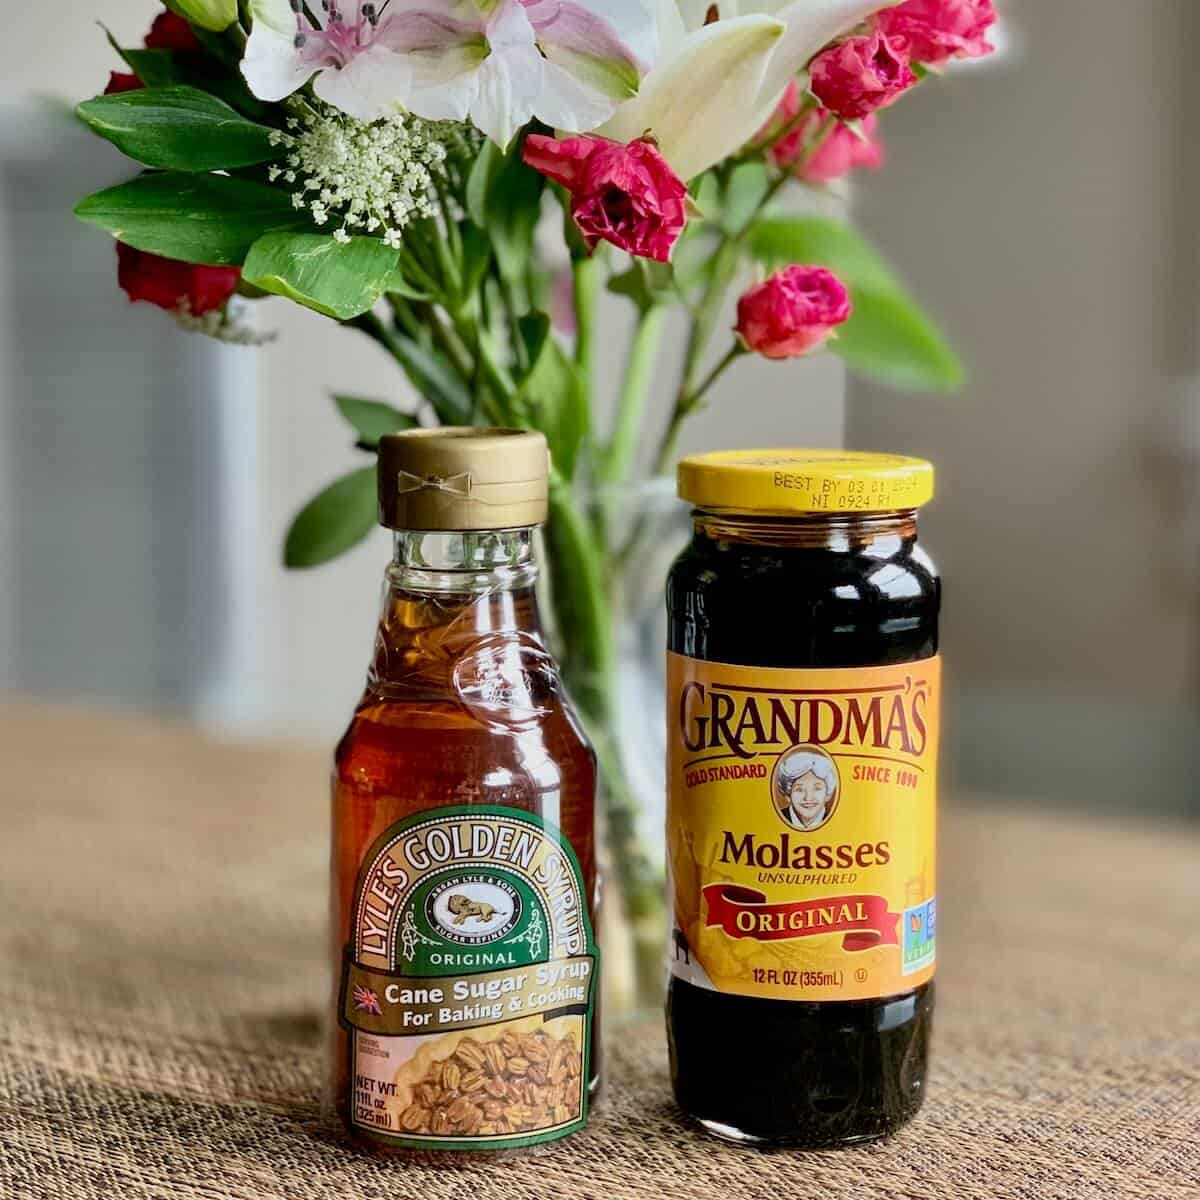 Lyle's Golden Syrup & Grandma's molasses on table with flowers.